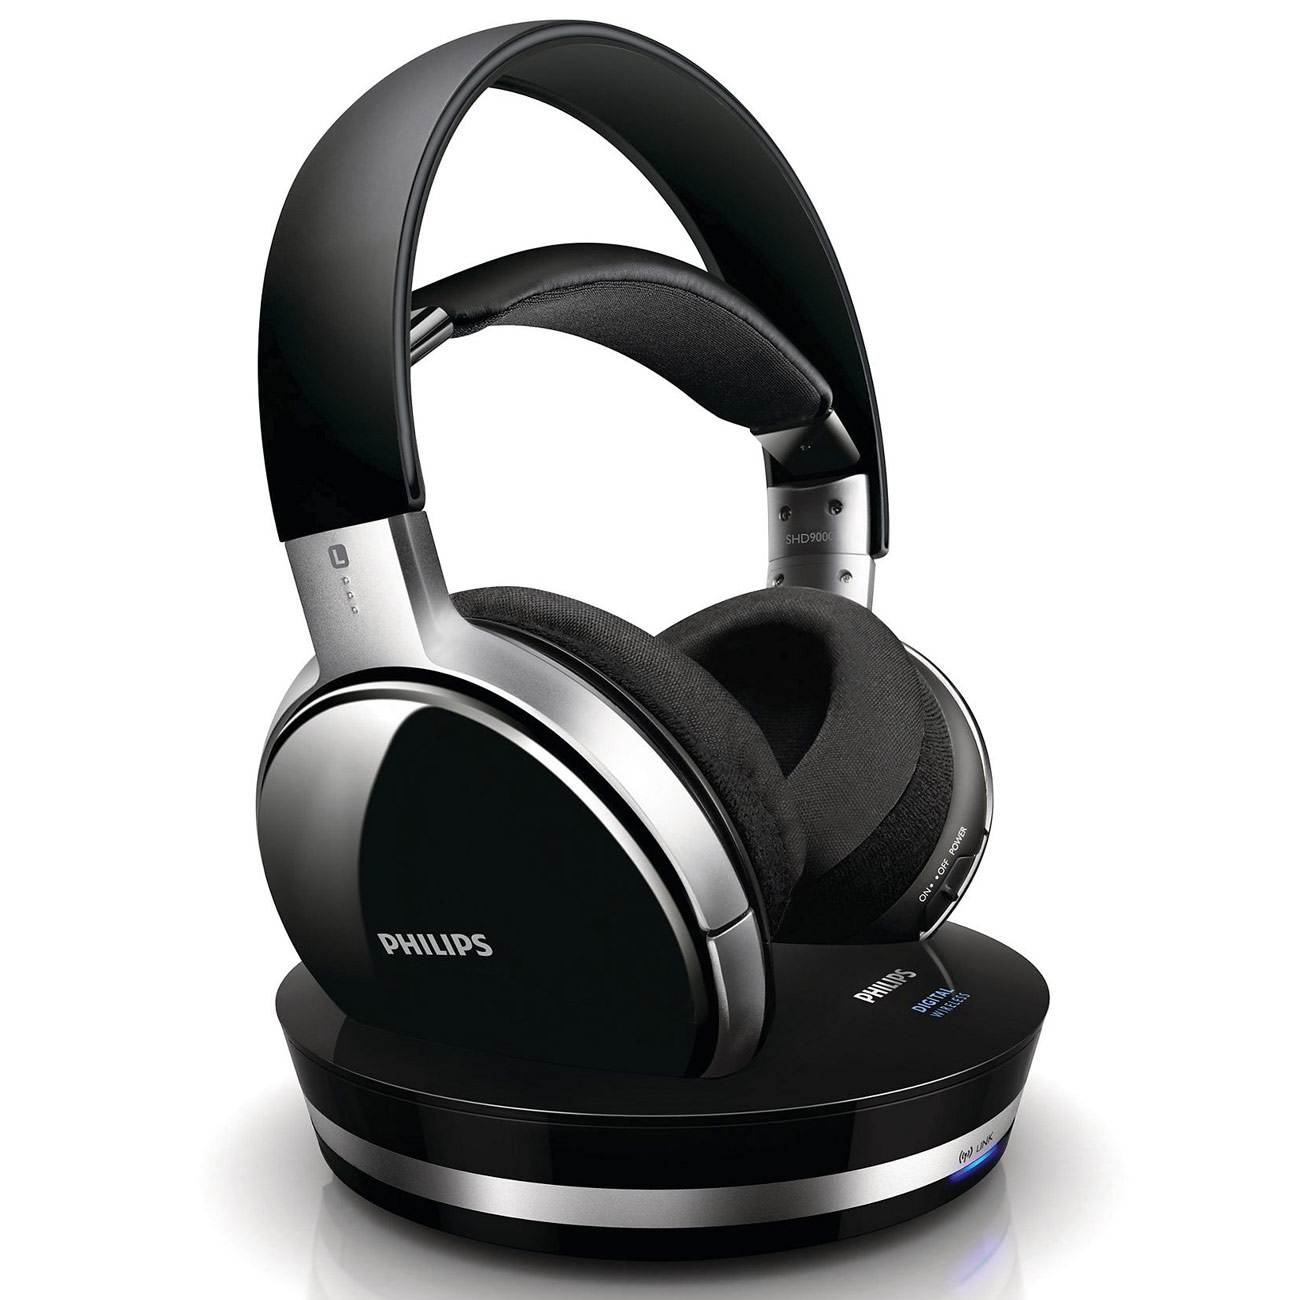 philips shd9000 casque philips sur. Black Bedroom Furniture Sets. Home Design Ideas